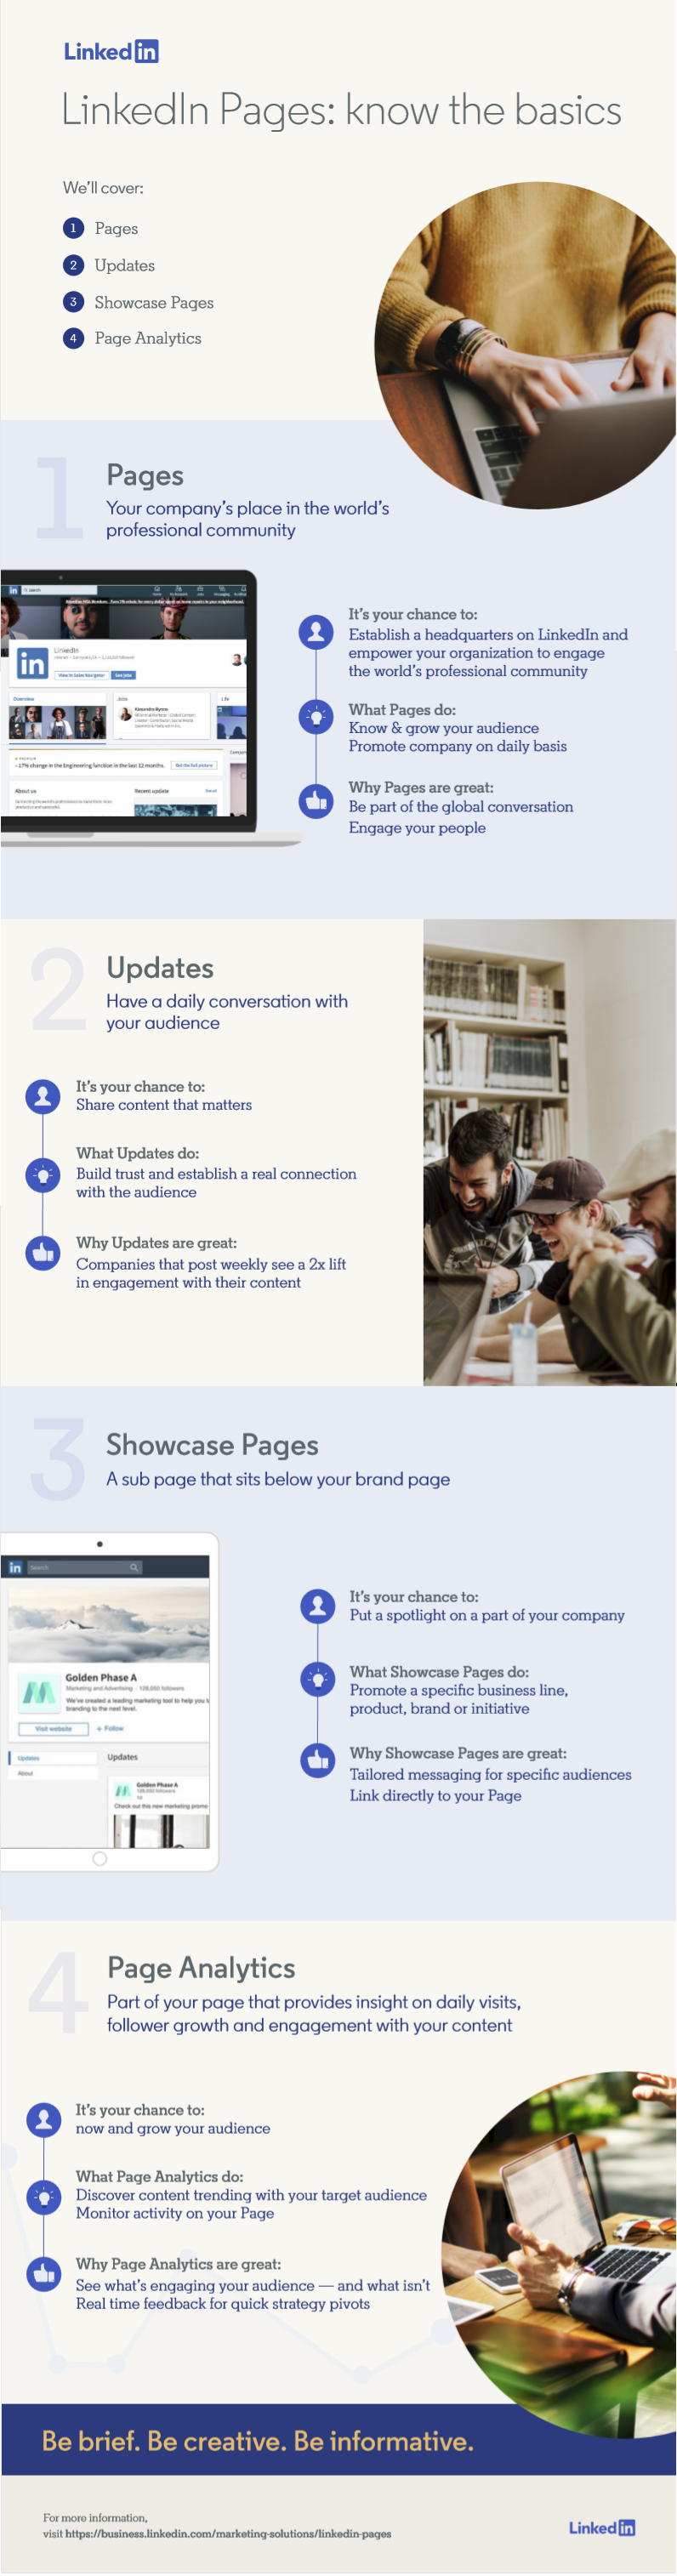 Infographic outlines the key aspects of LinkedIn's business pages